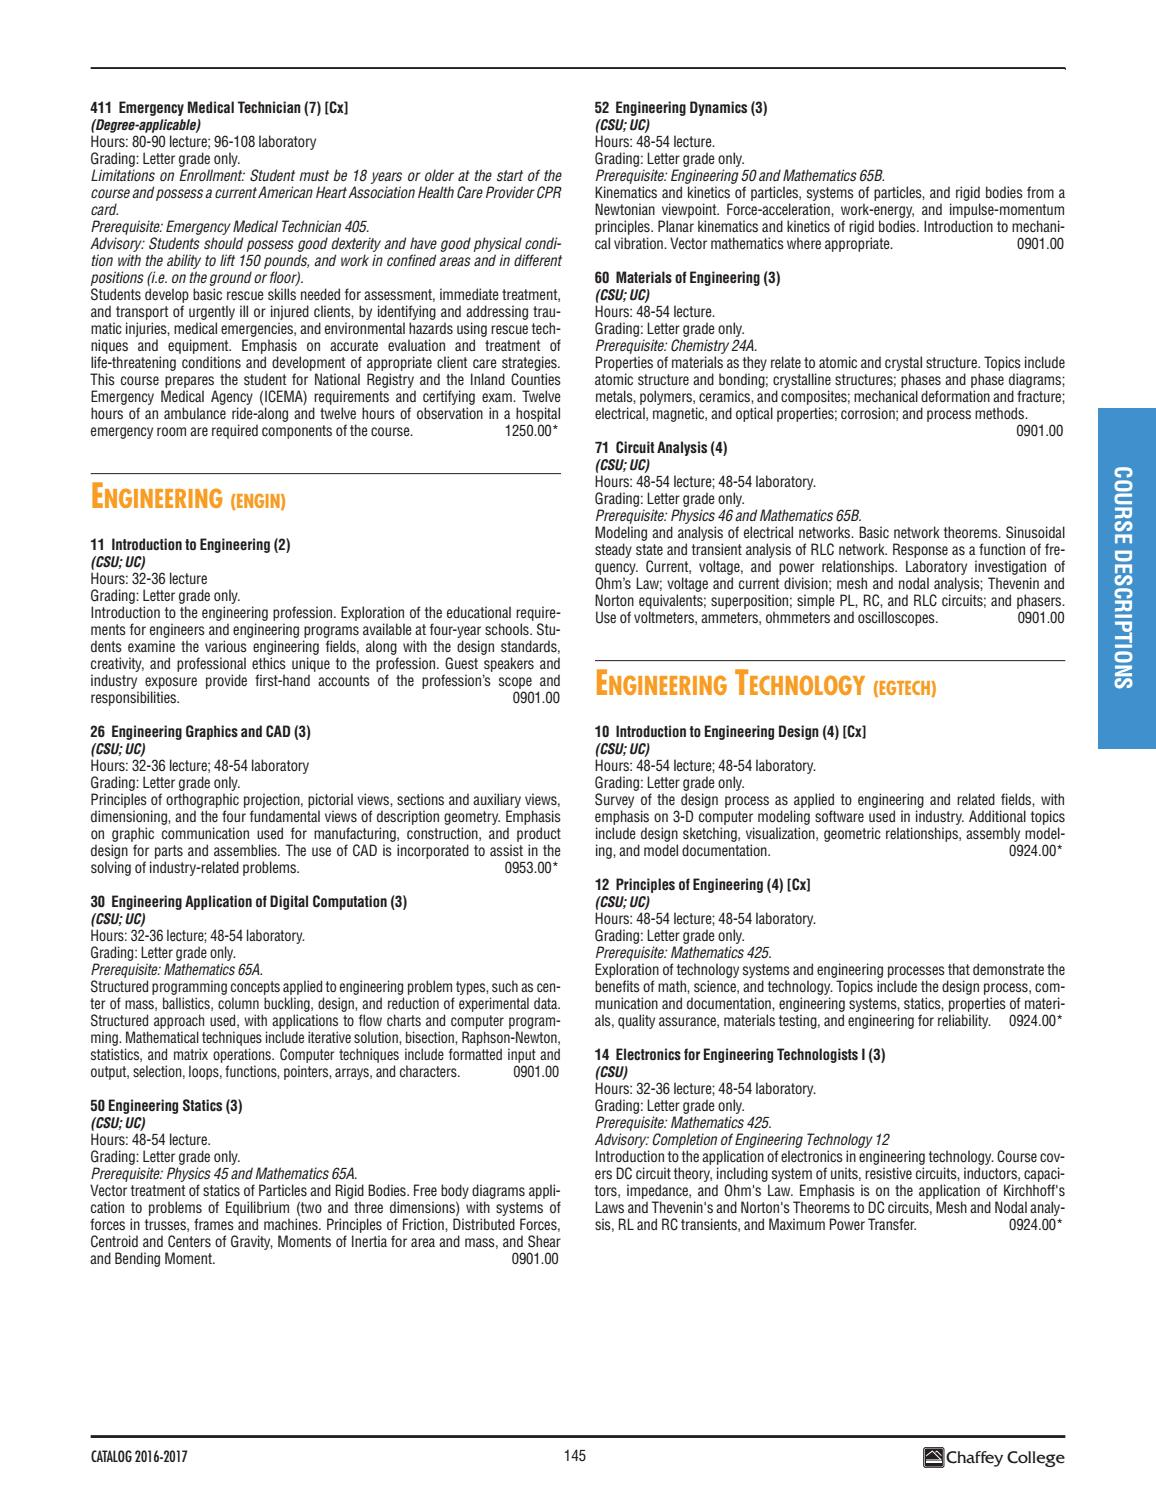 Chaffey College Catalog 2016 2017 By Issuu Home Images Free Body Diagram Statics